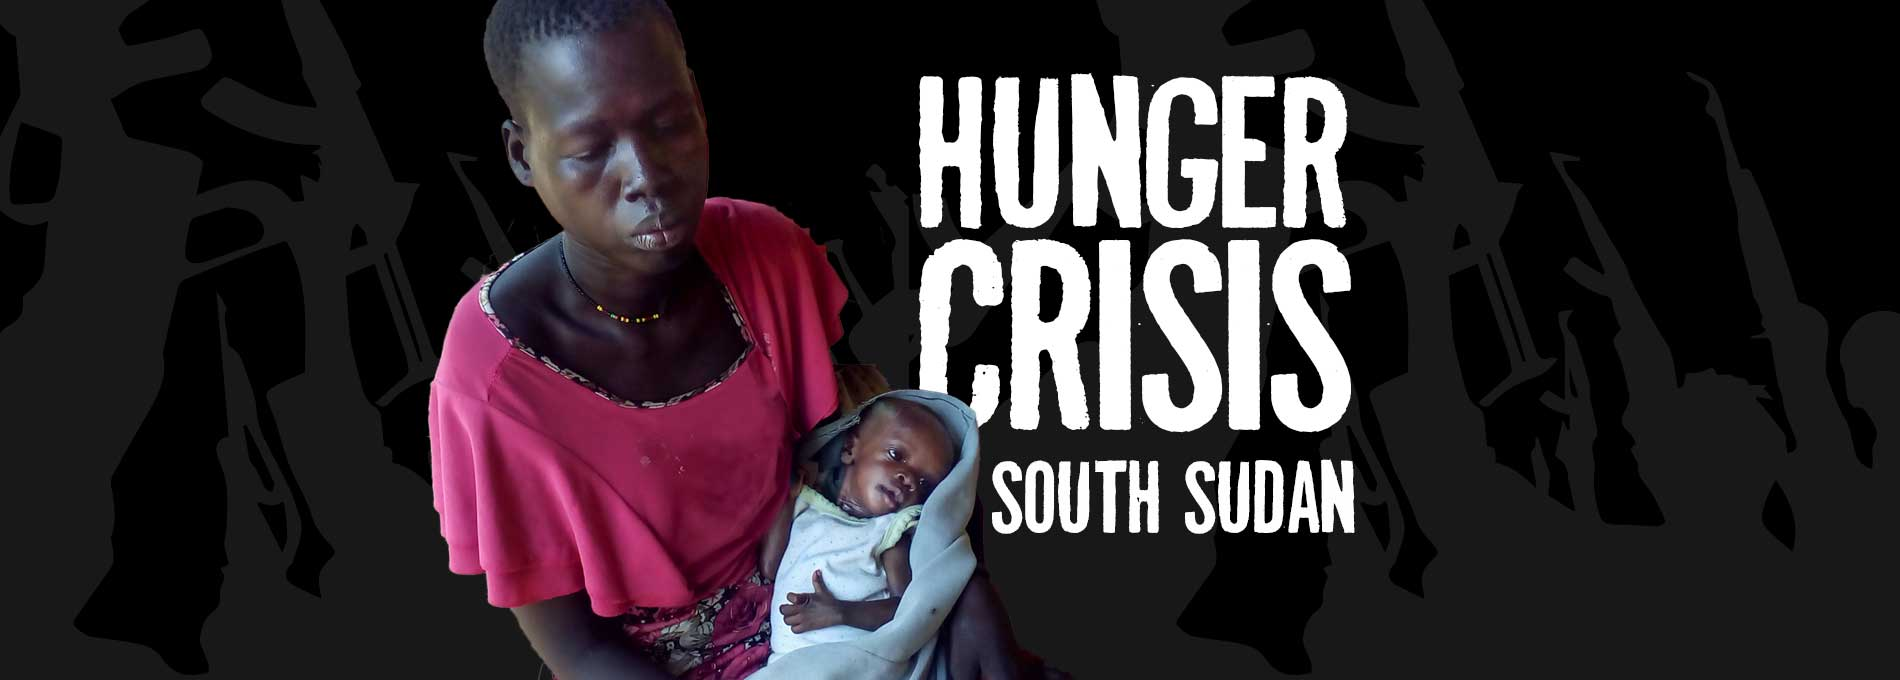 South Sudan Hunger Crisis